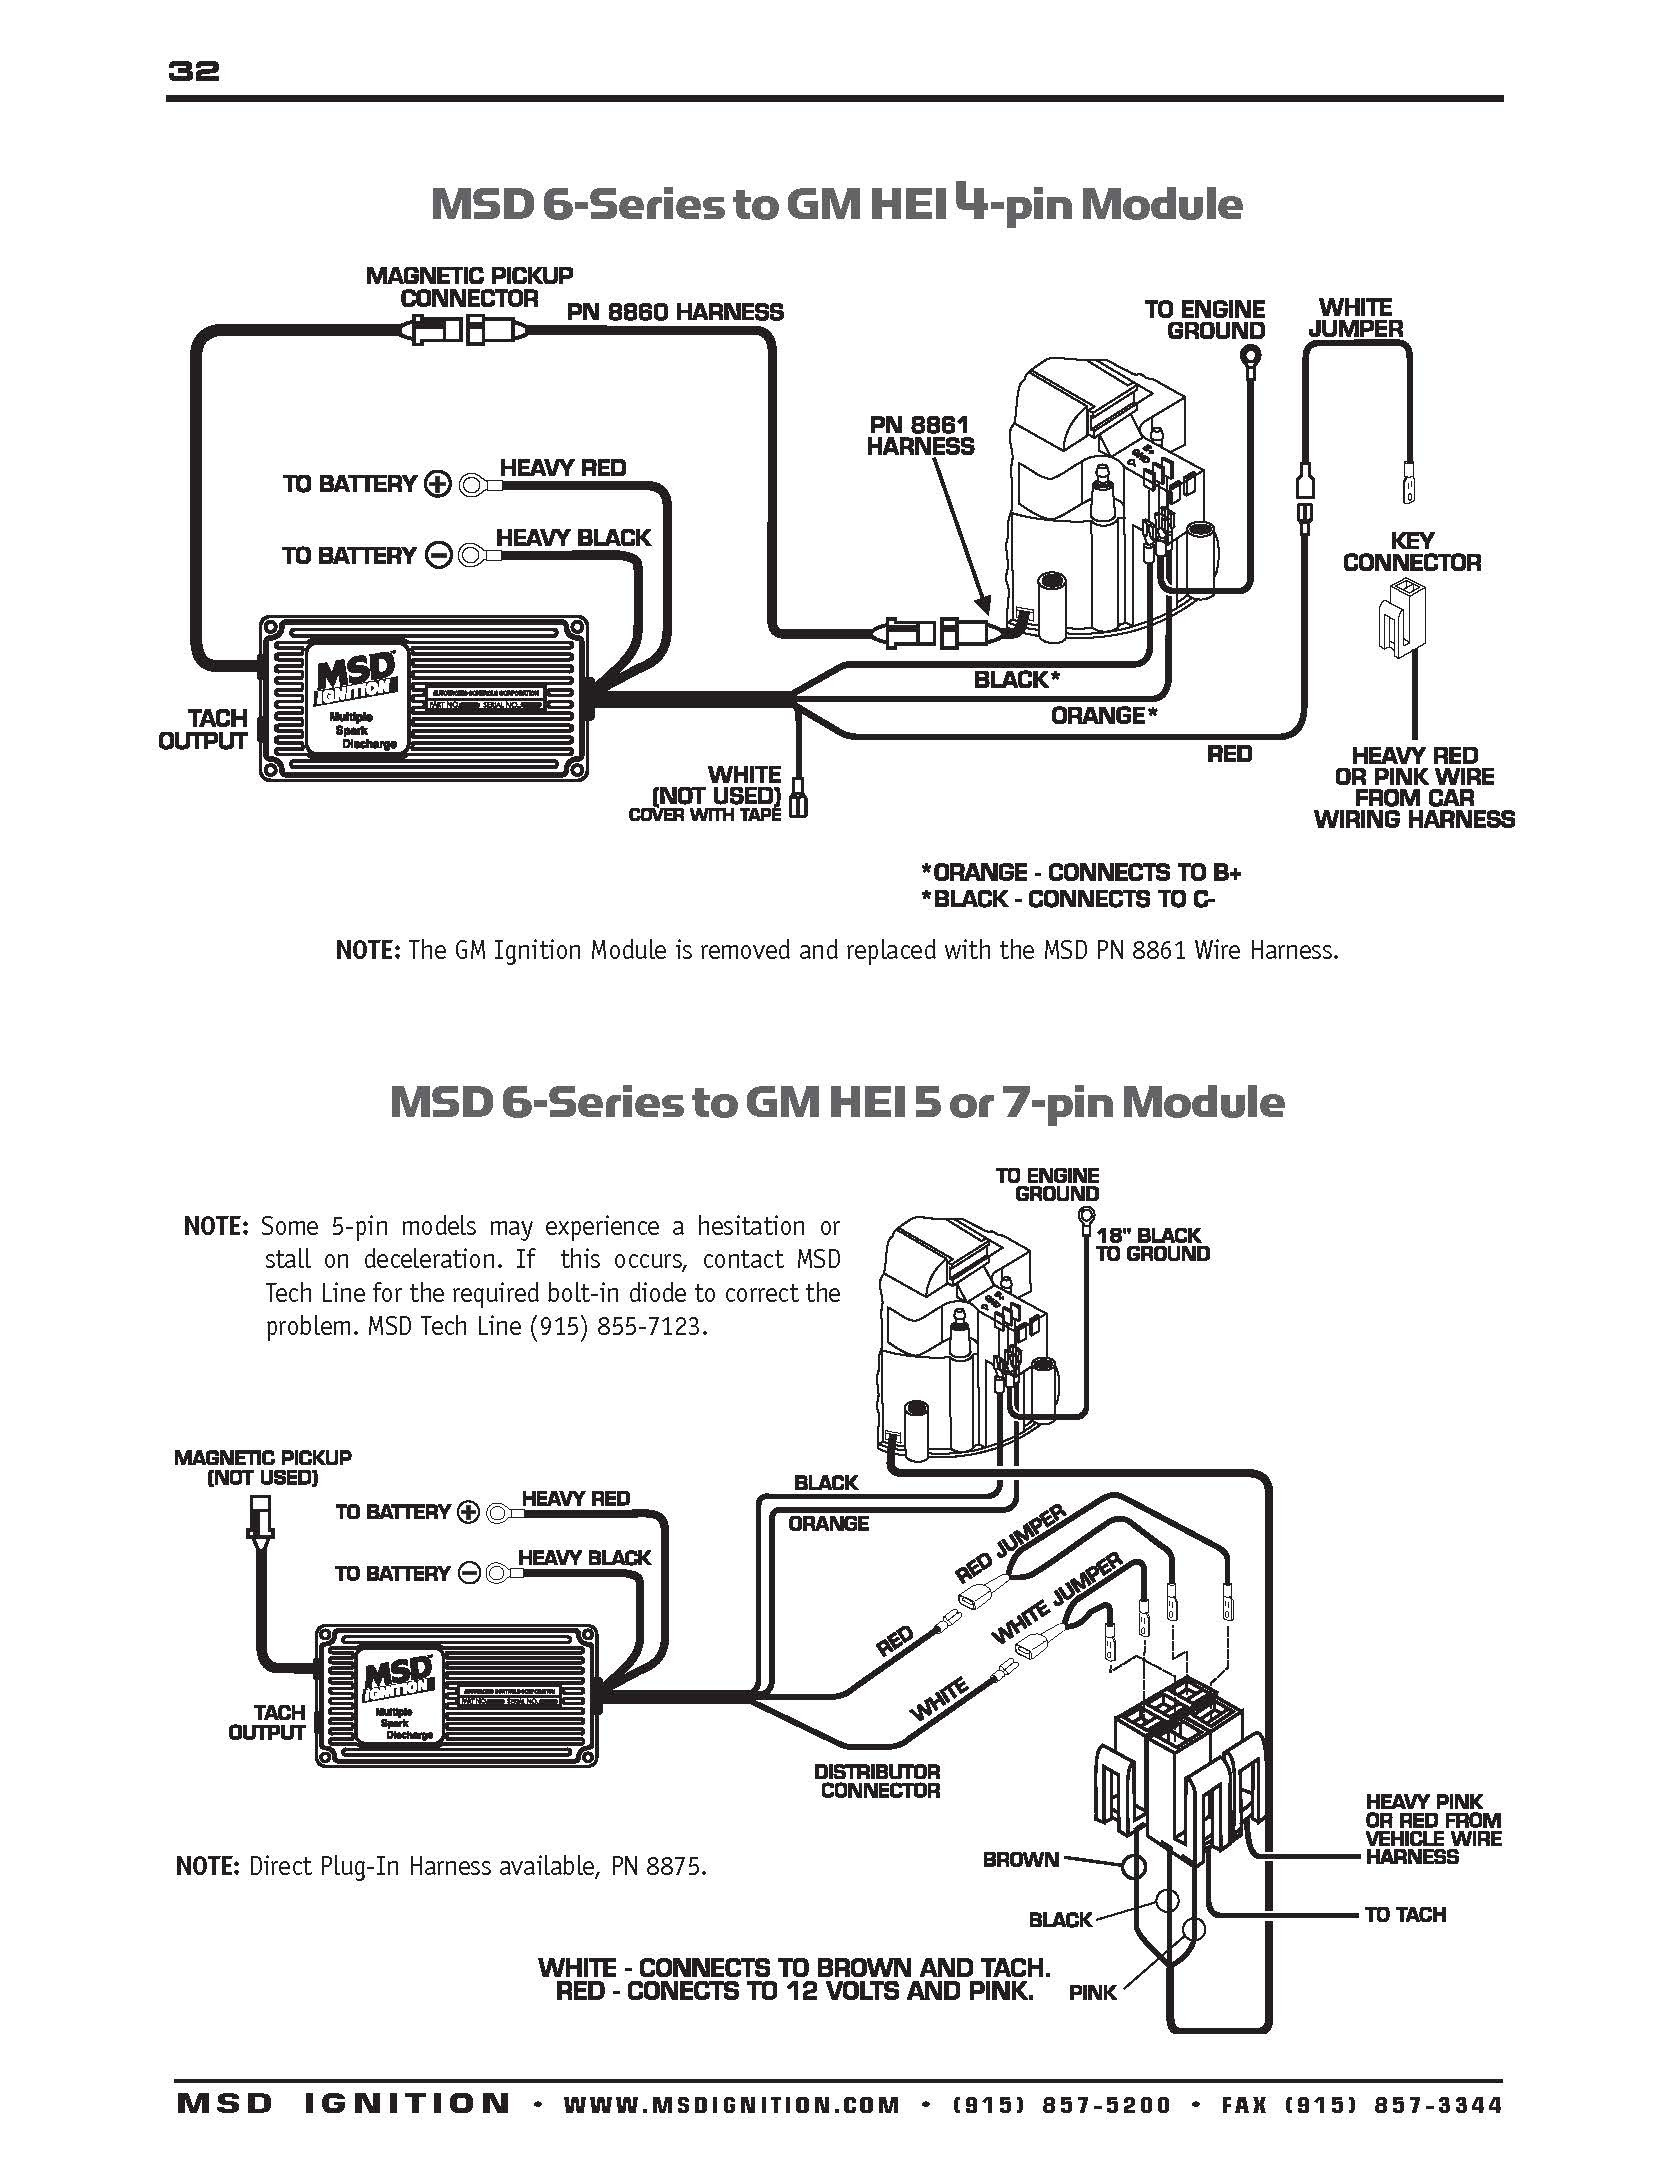 hight resolution of msd 6a wiring harness wiring diagram fascinatingmsd 6al wiring diagram free download wiring diagram expert msd